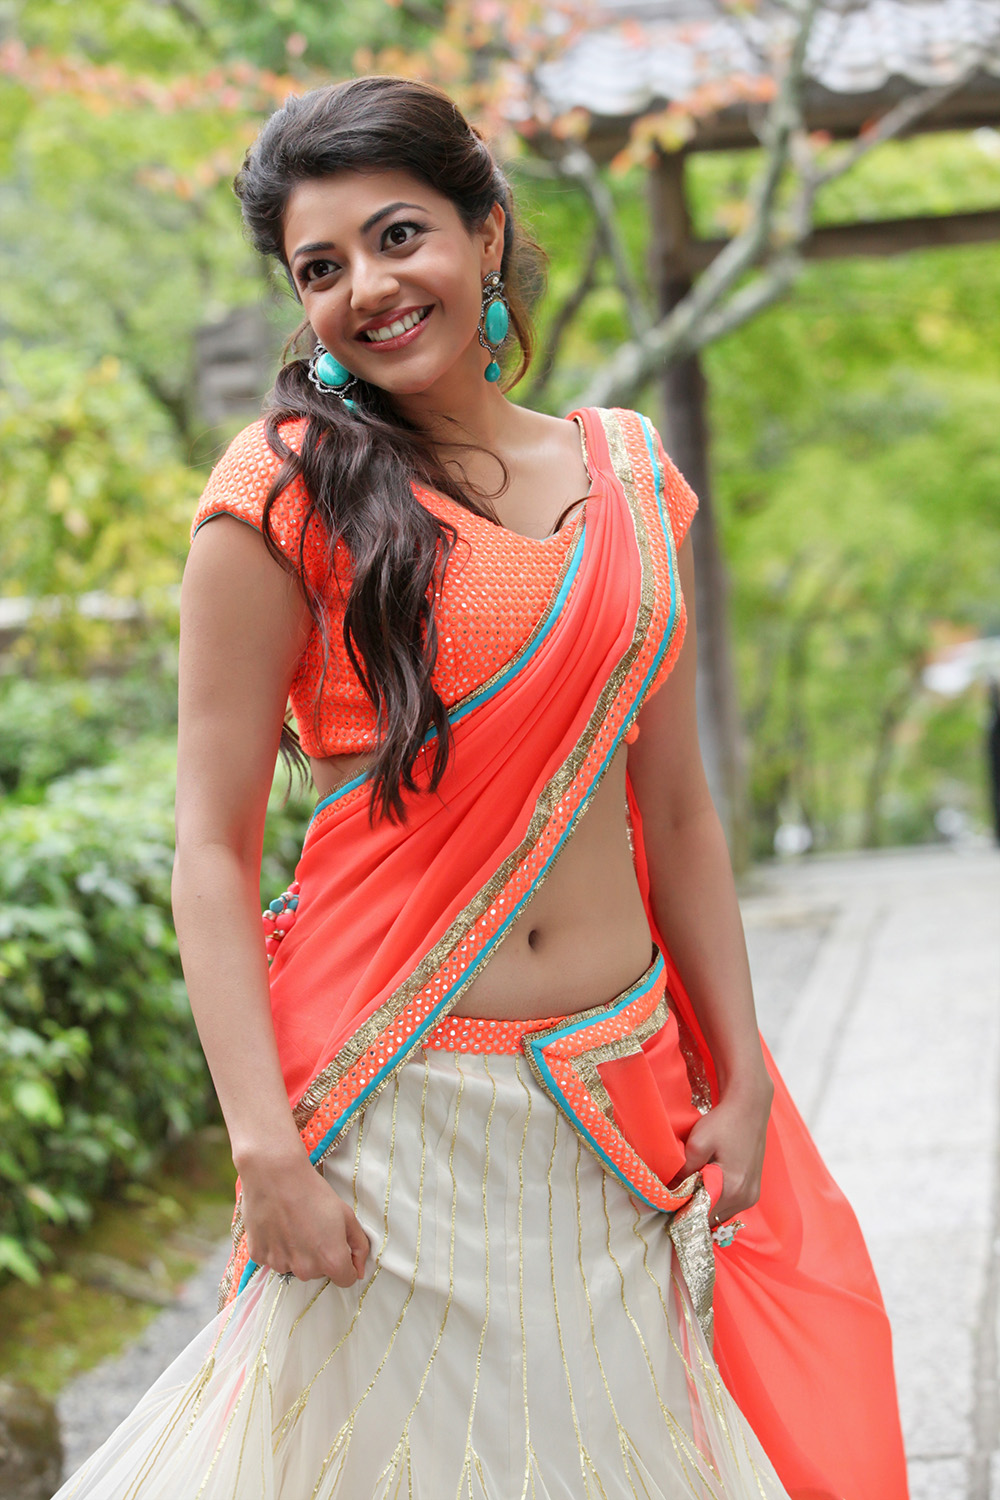 Tamil very hot pusy girl photo